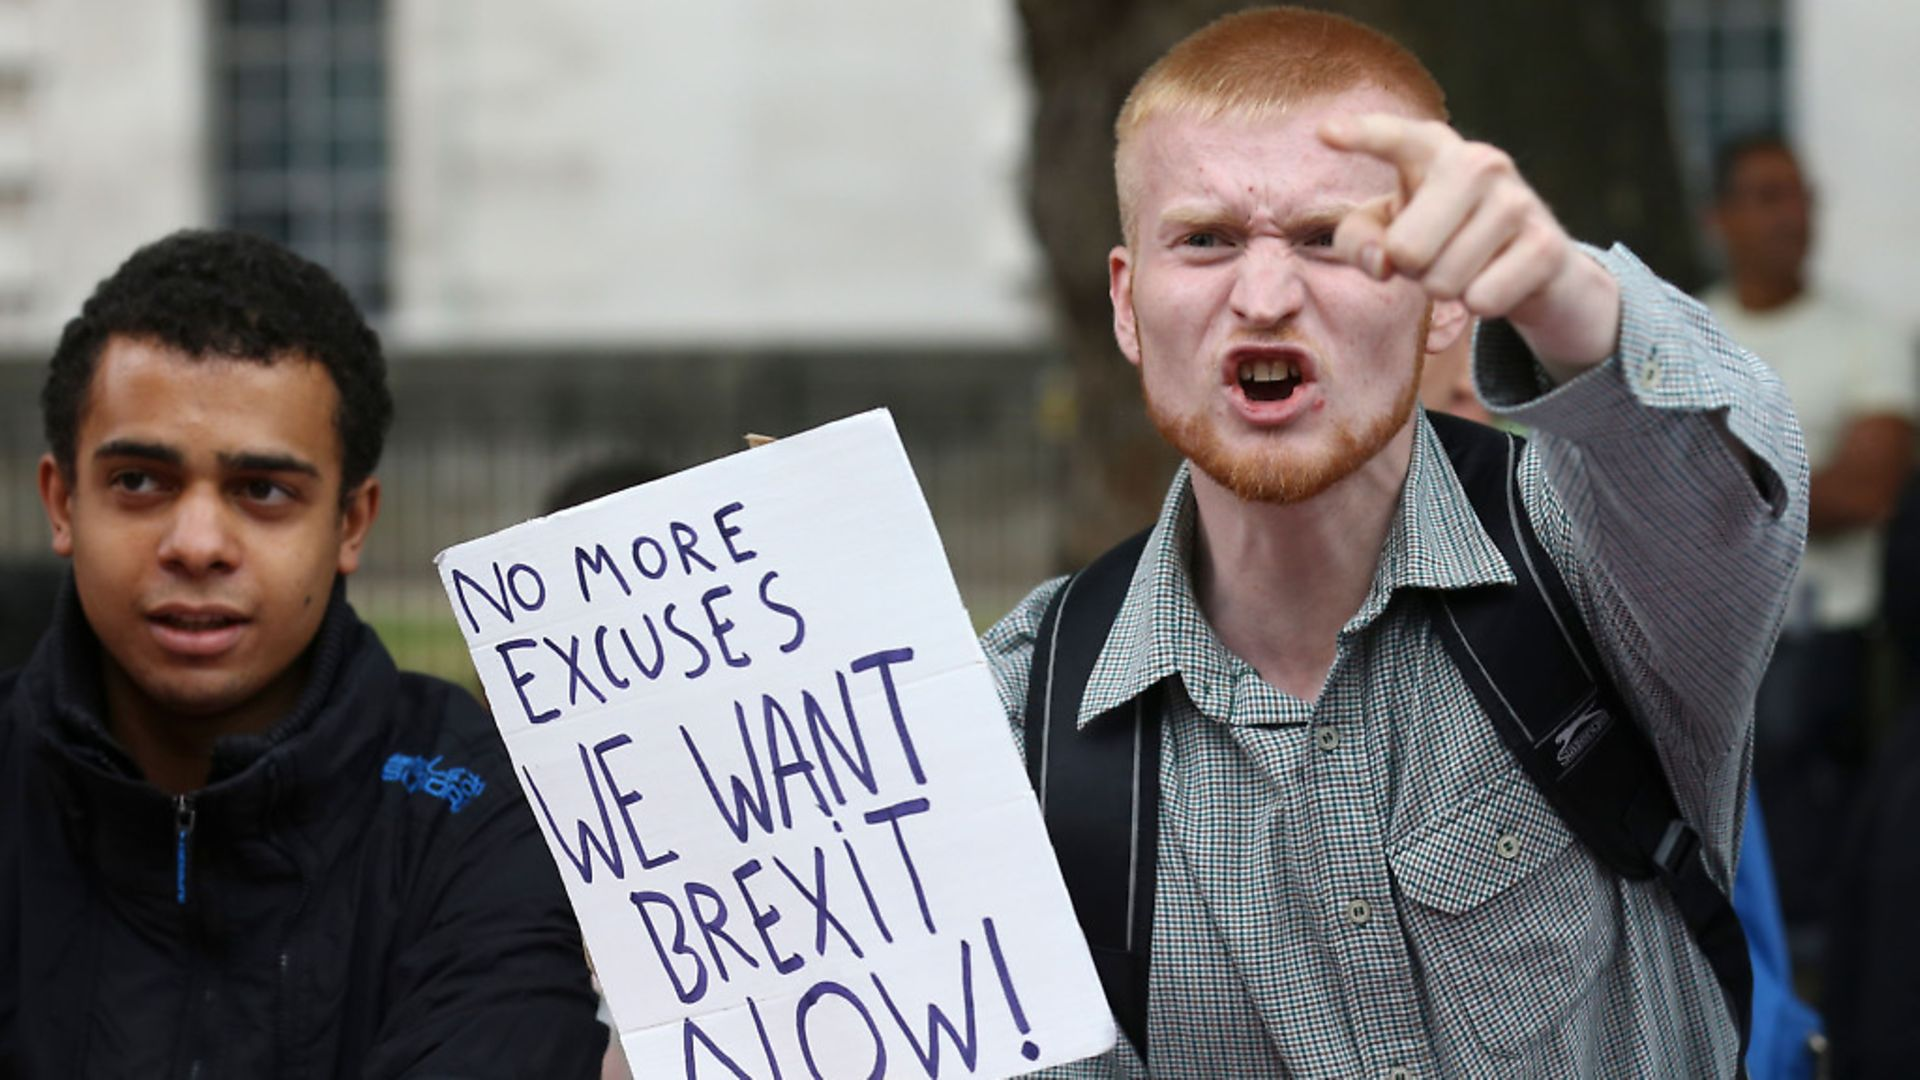 A pro-Brexit protester. Photograph: Justin Tallis/AFP/Getty Images. - Credit: AFP/Getty Images